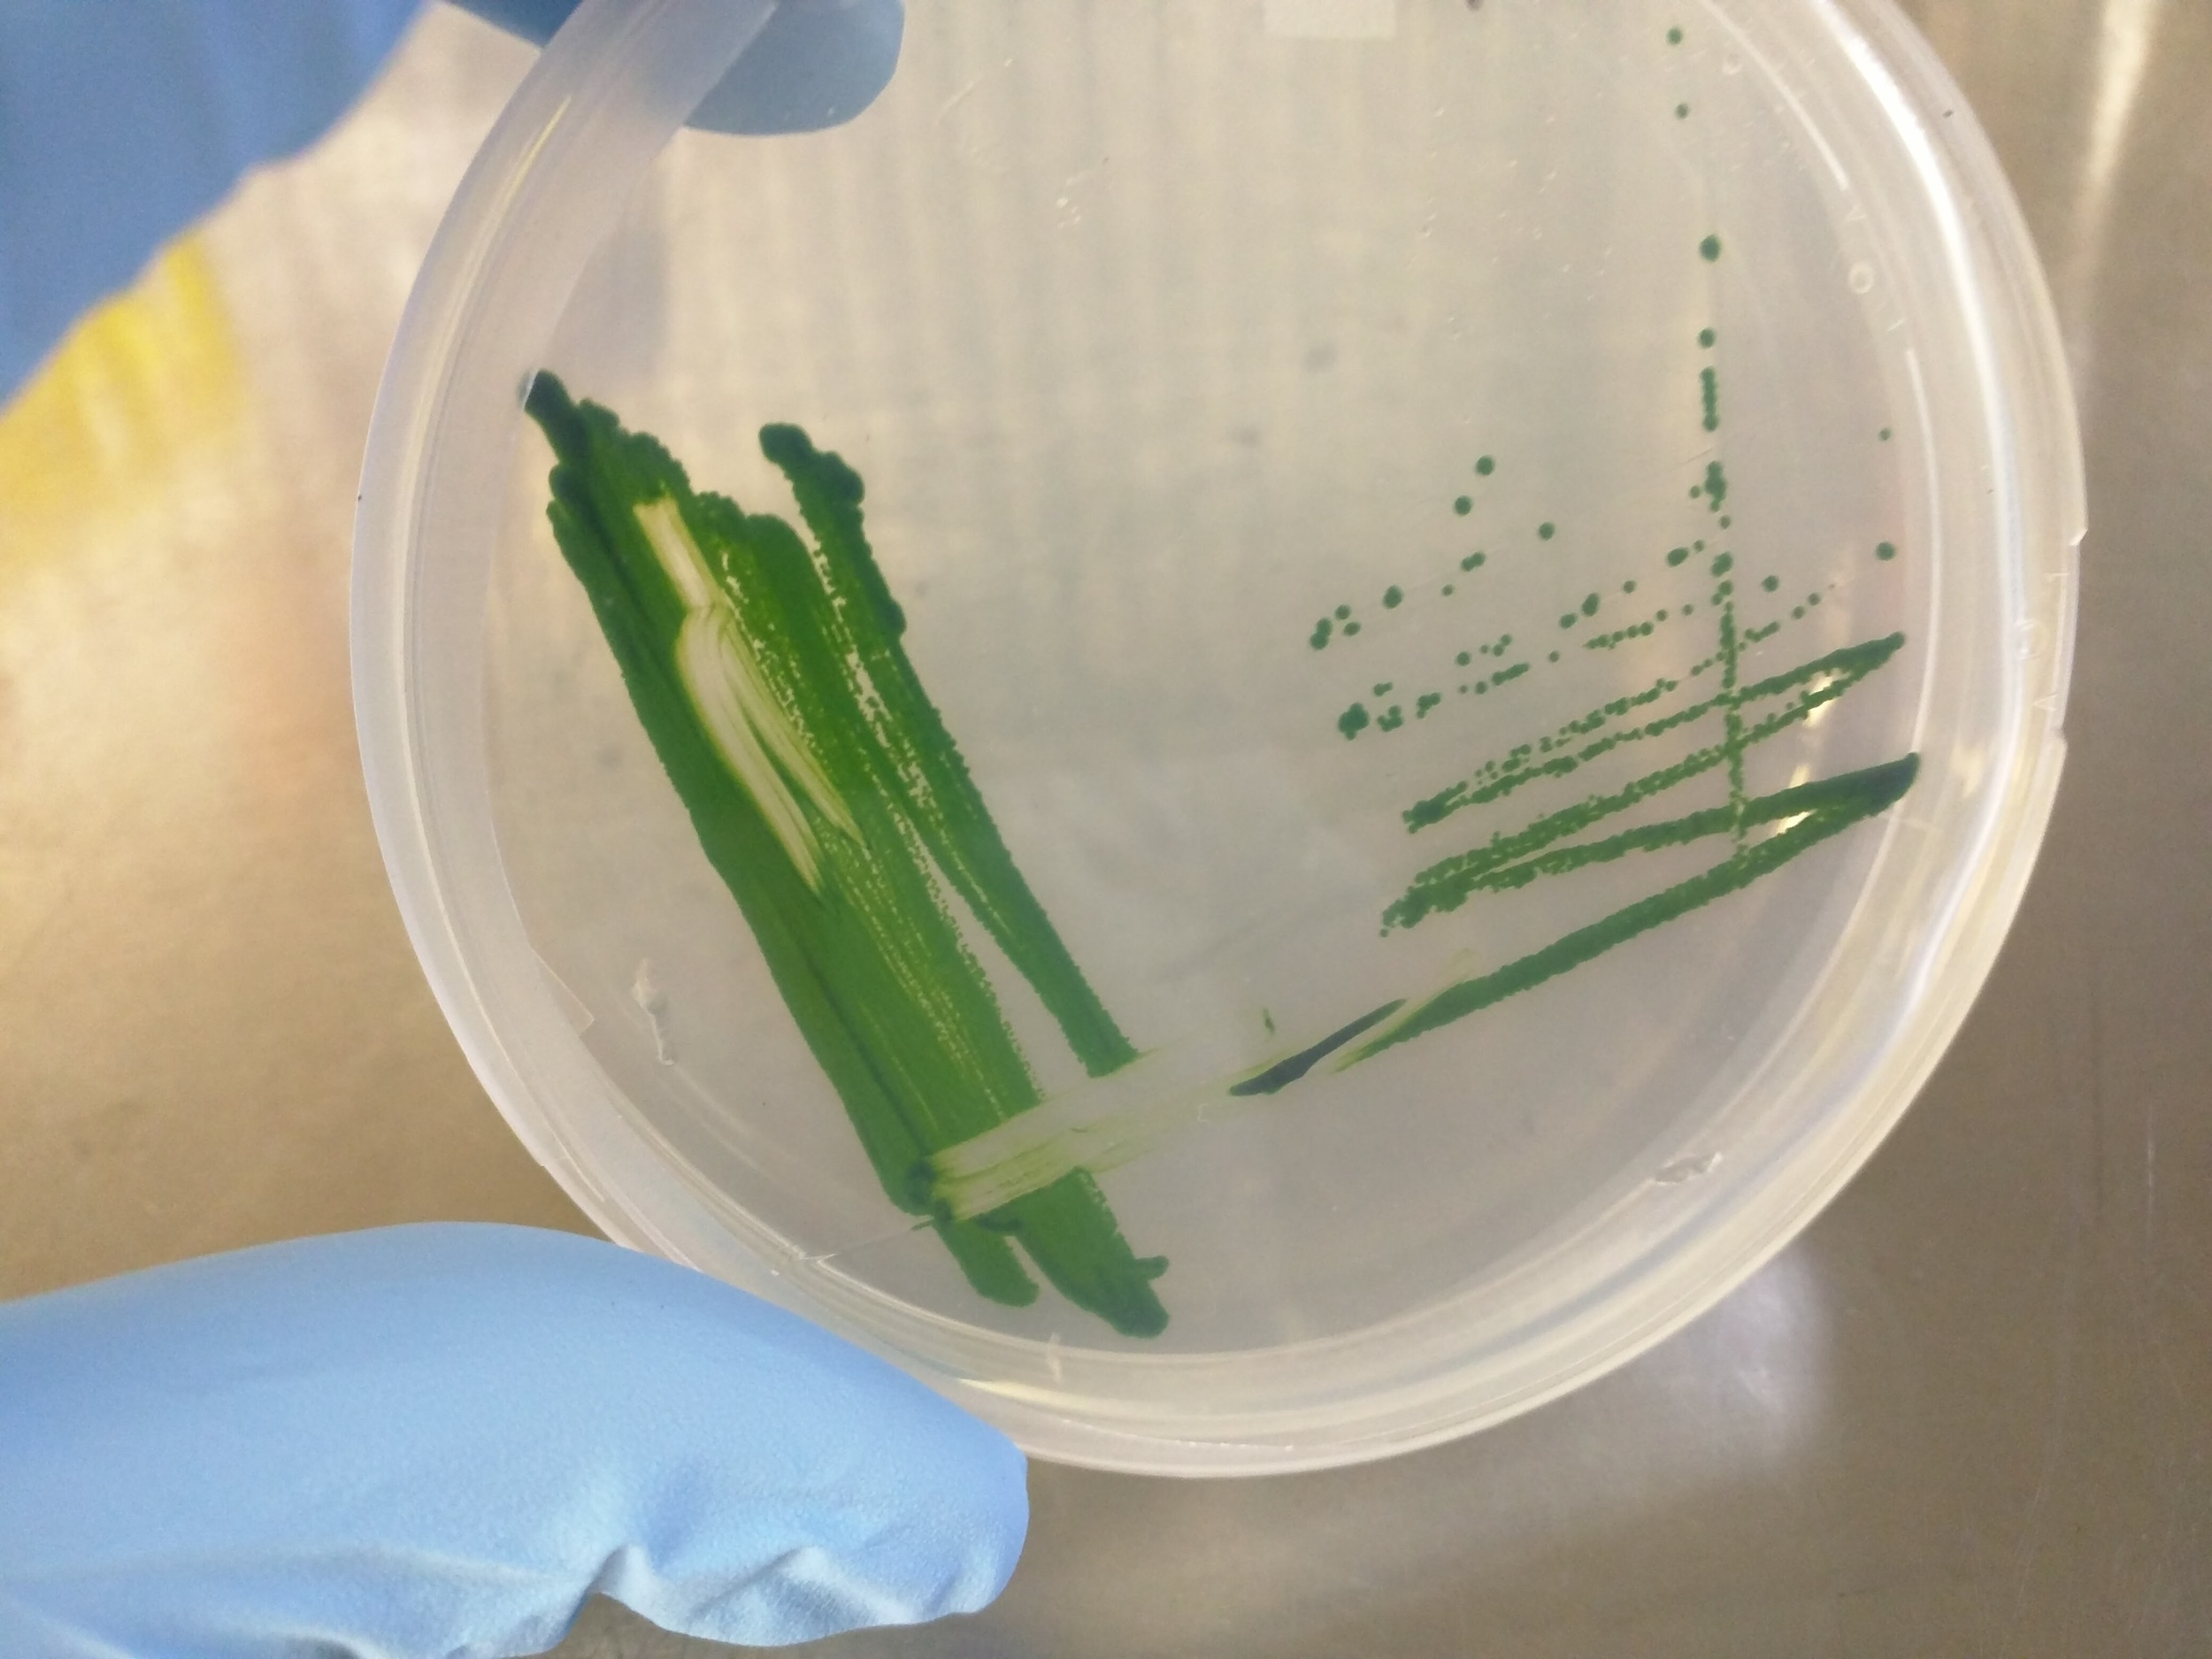 The green microalga,  Chlmaydomonas reinhardtii , grown on Tris-Acetate-Phosphate (TAP) medium.